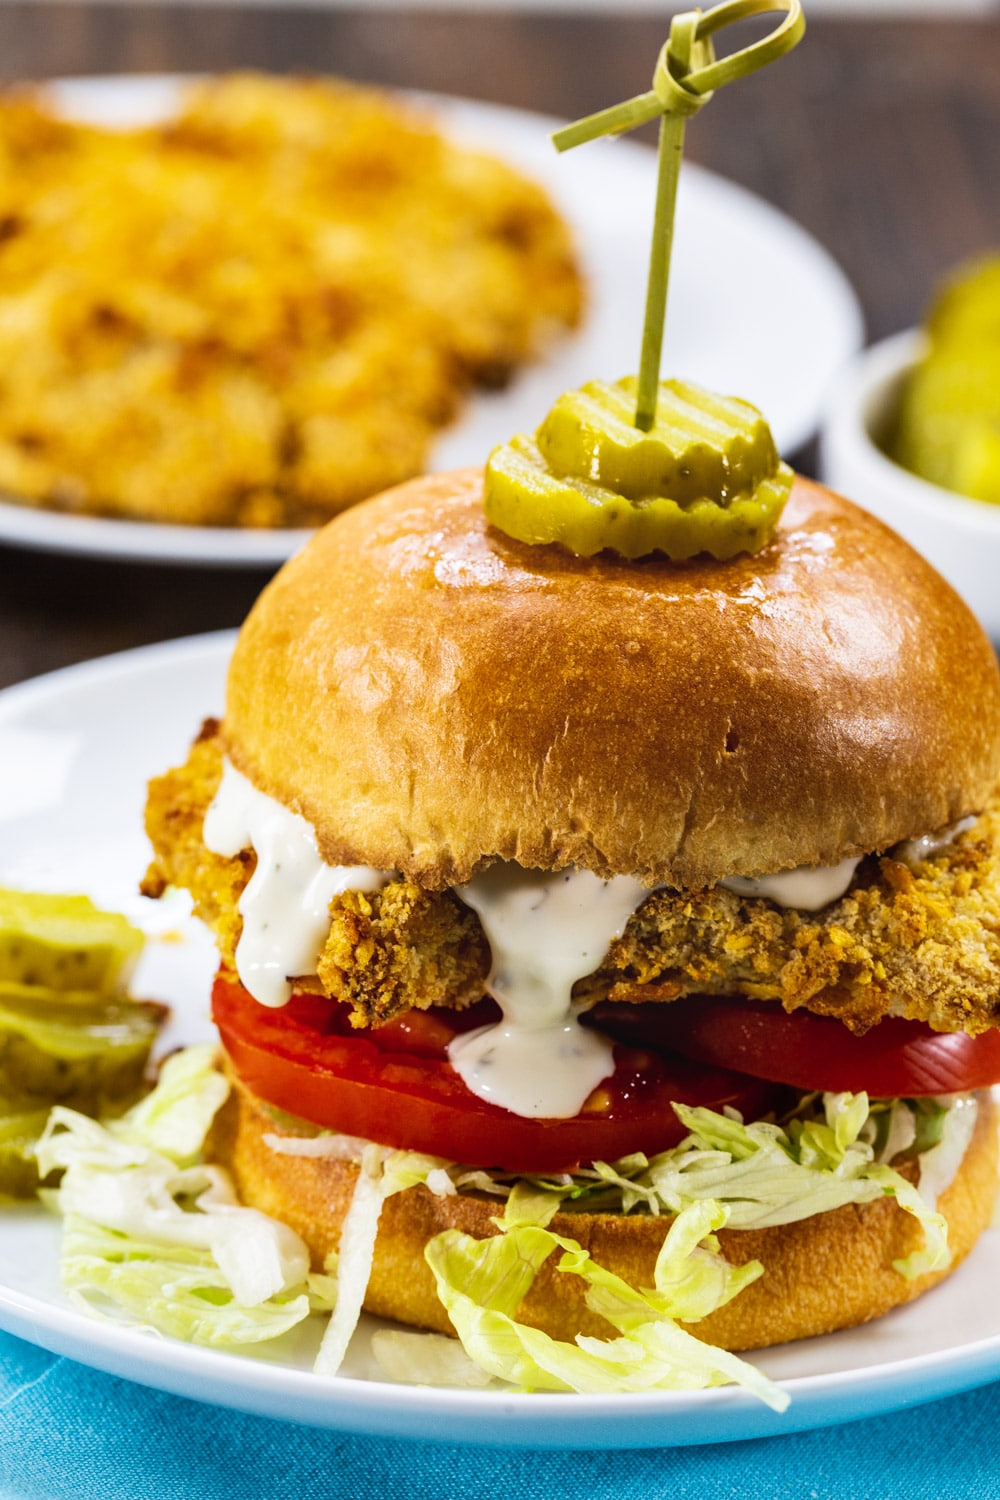 Close-up of Cornflake Crusted Chicken Sandwich with ranch dressing drippinf down.